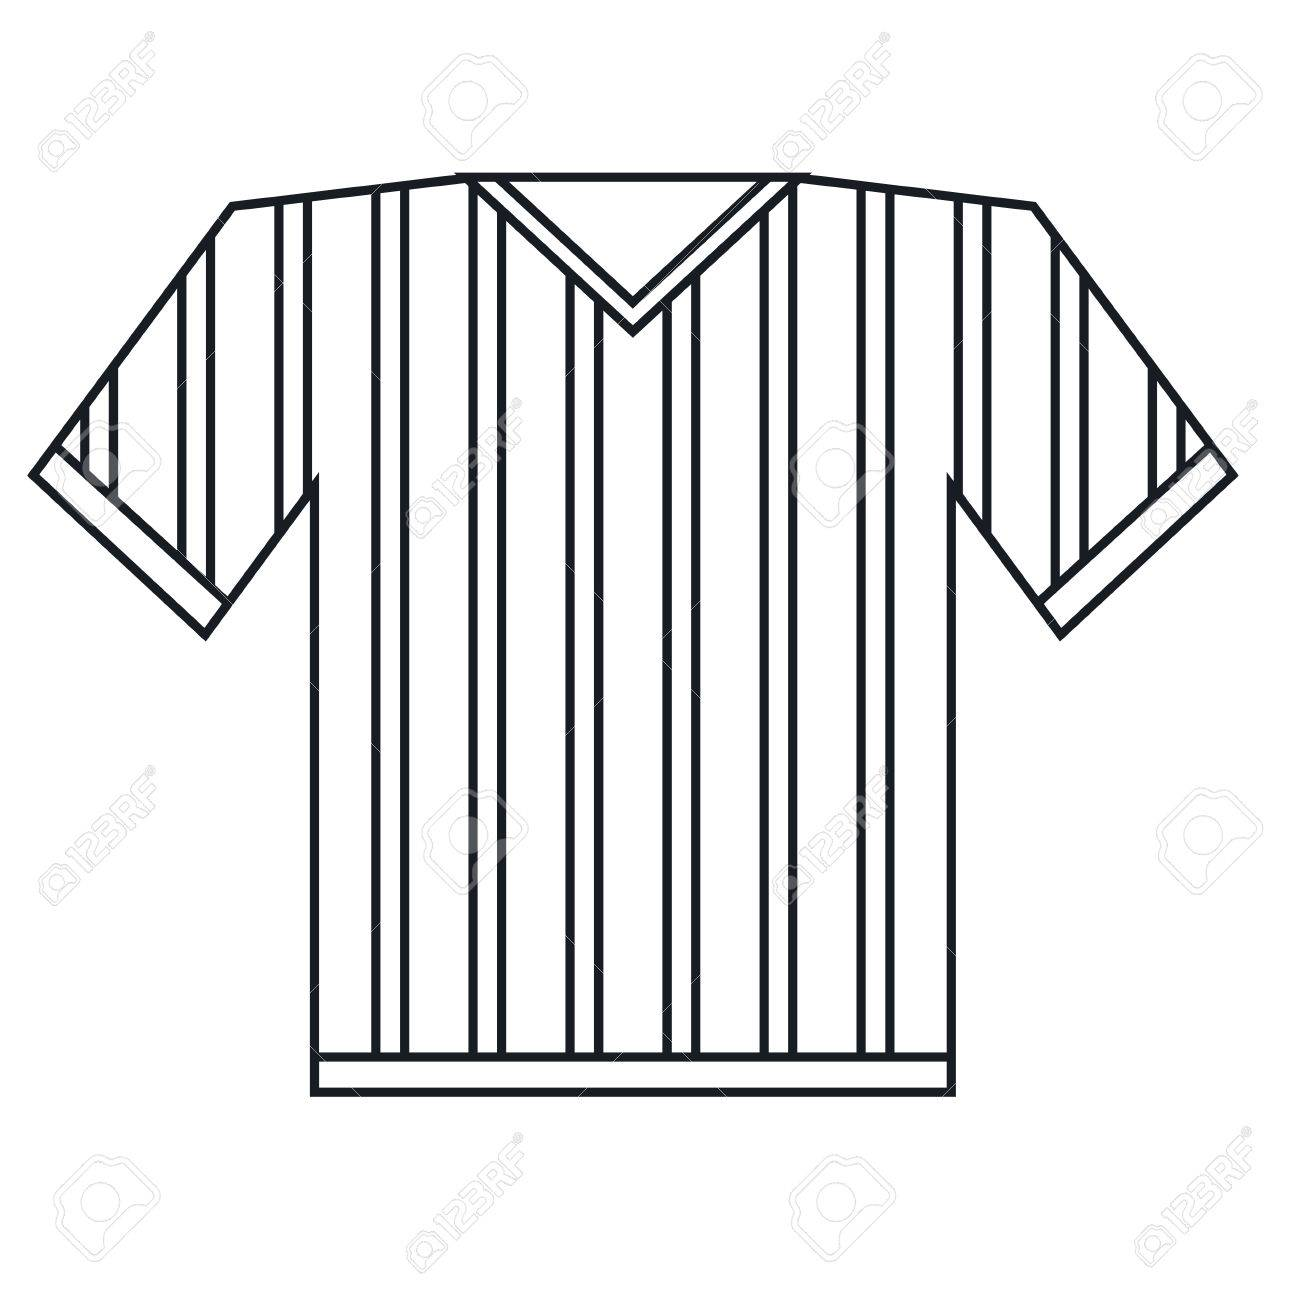 jersey referee american football outline vector illustration eps 10 stock vector 67456788 - Football Outline